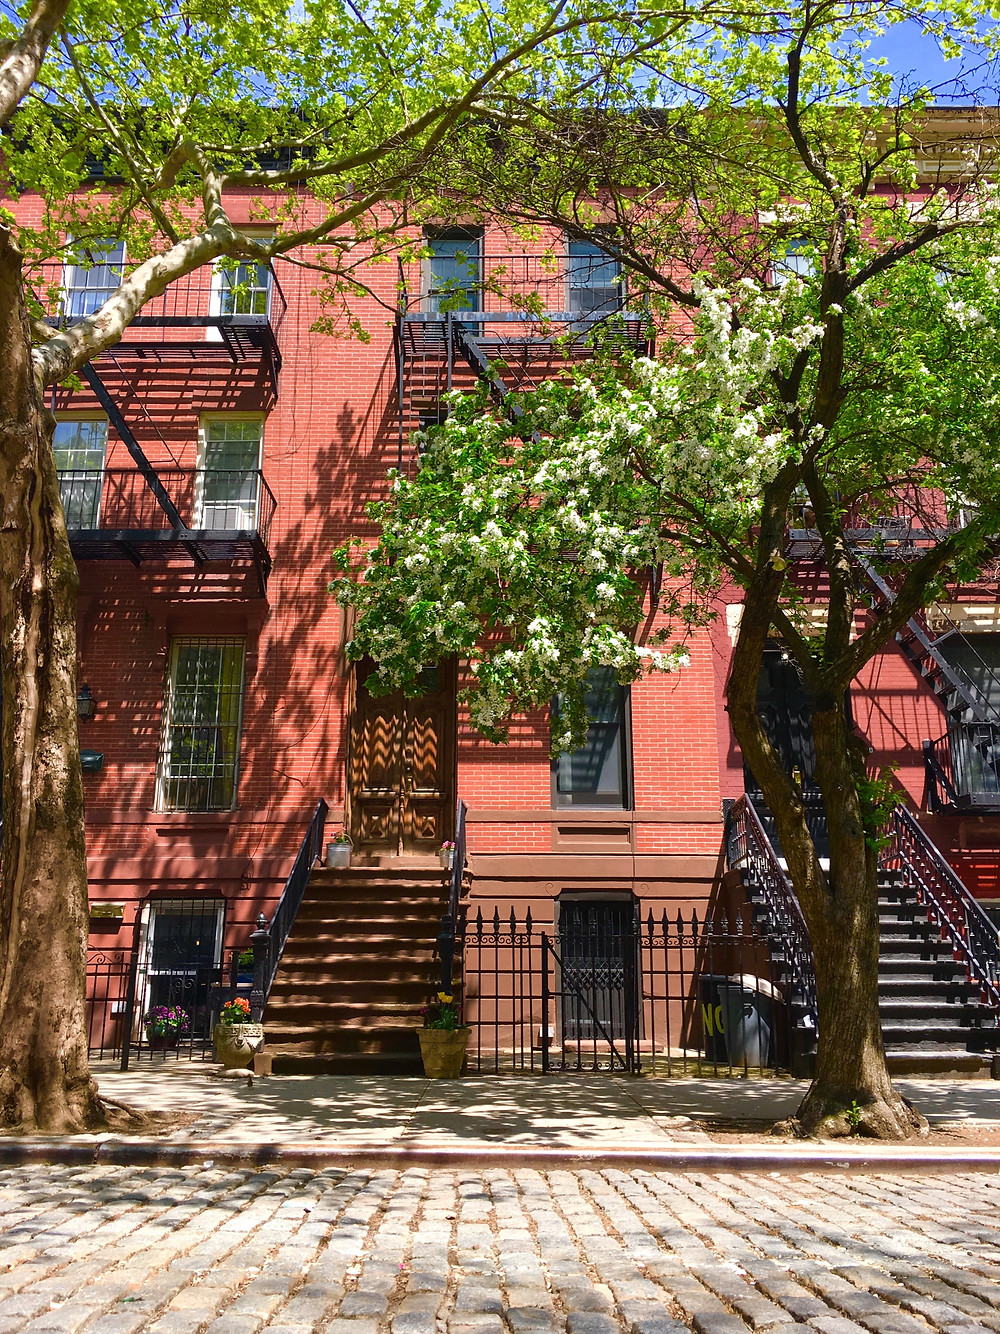 A cobblestone street in East Harlem's first historic district